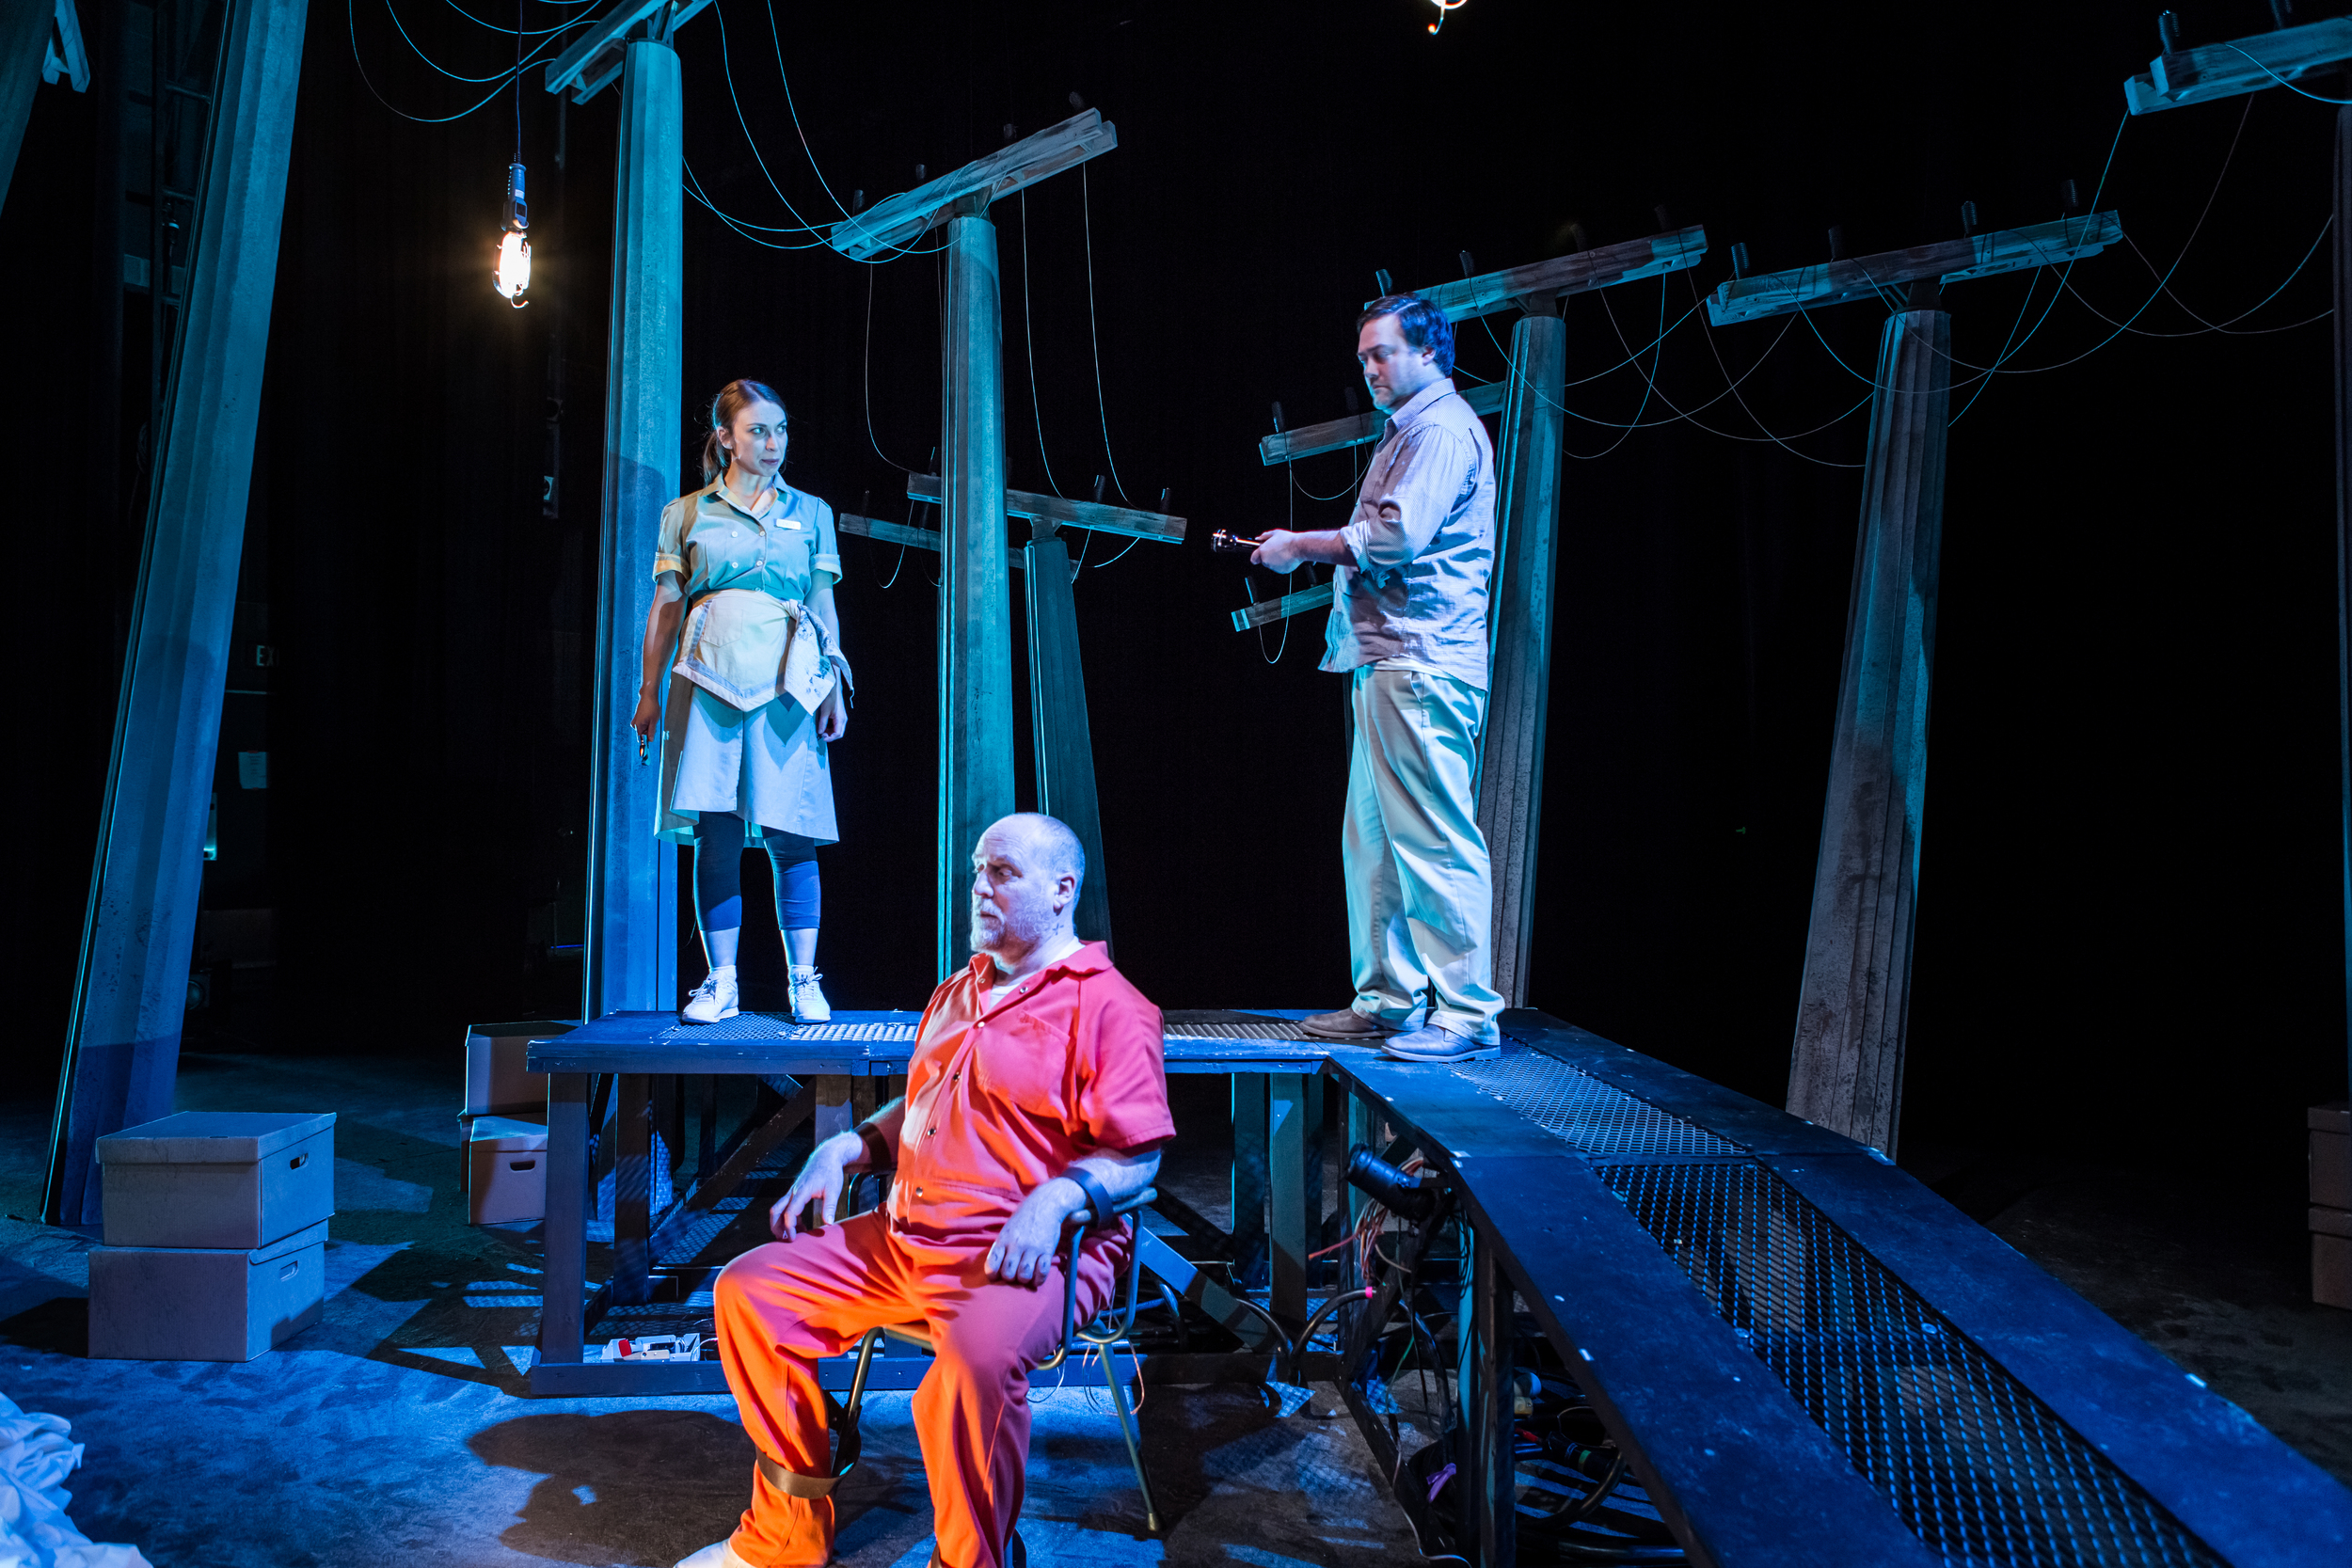 Laws of Thermodynamics - Production Photos - 20150215 - 0031.jpg